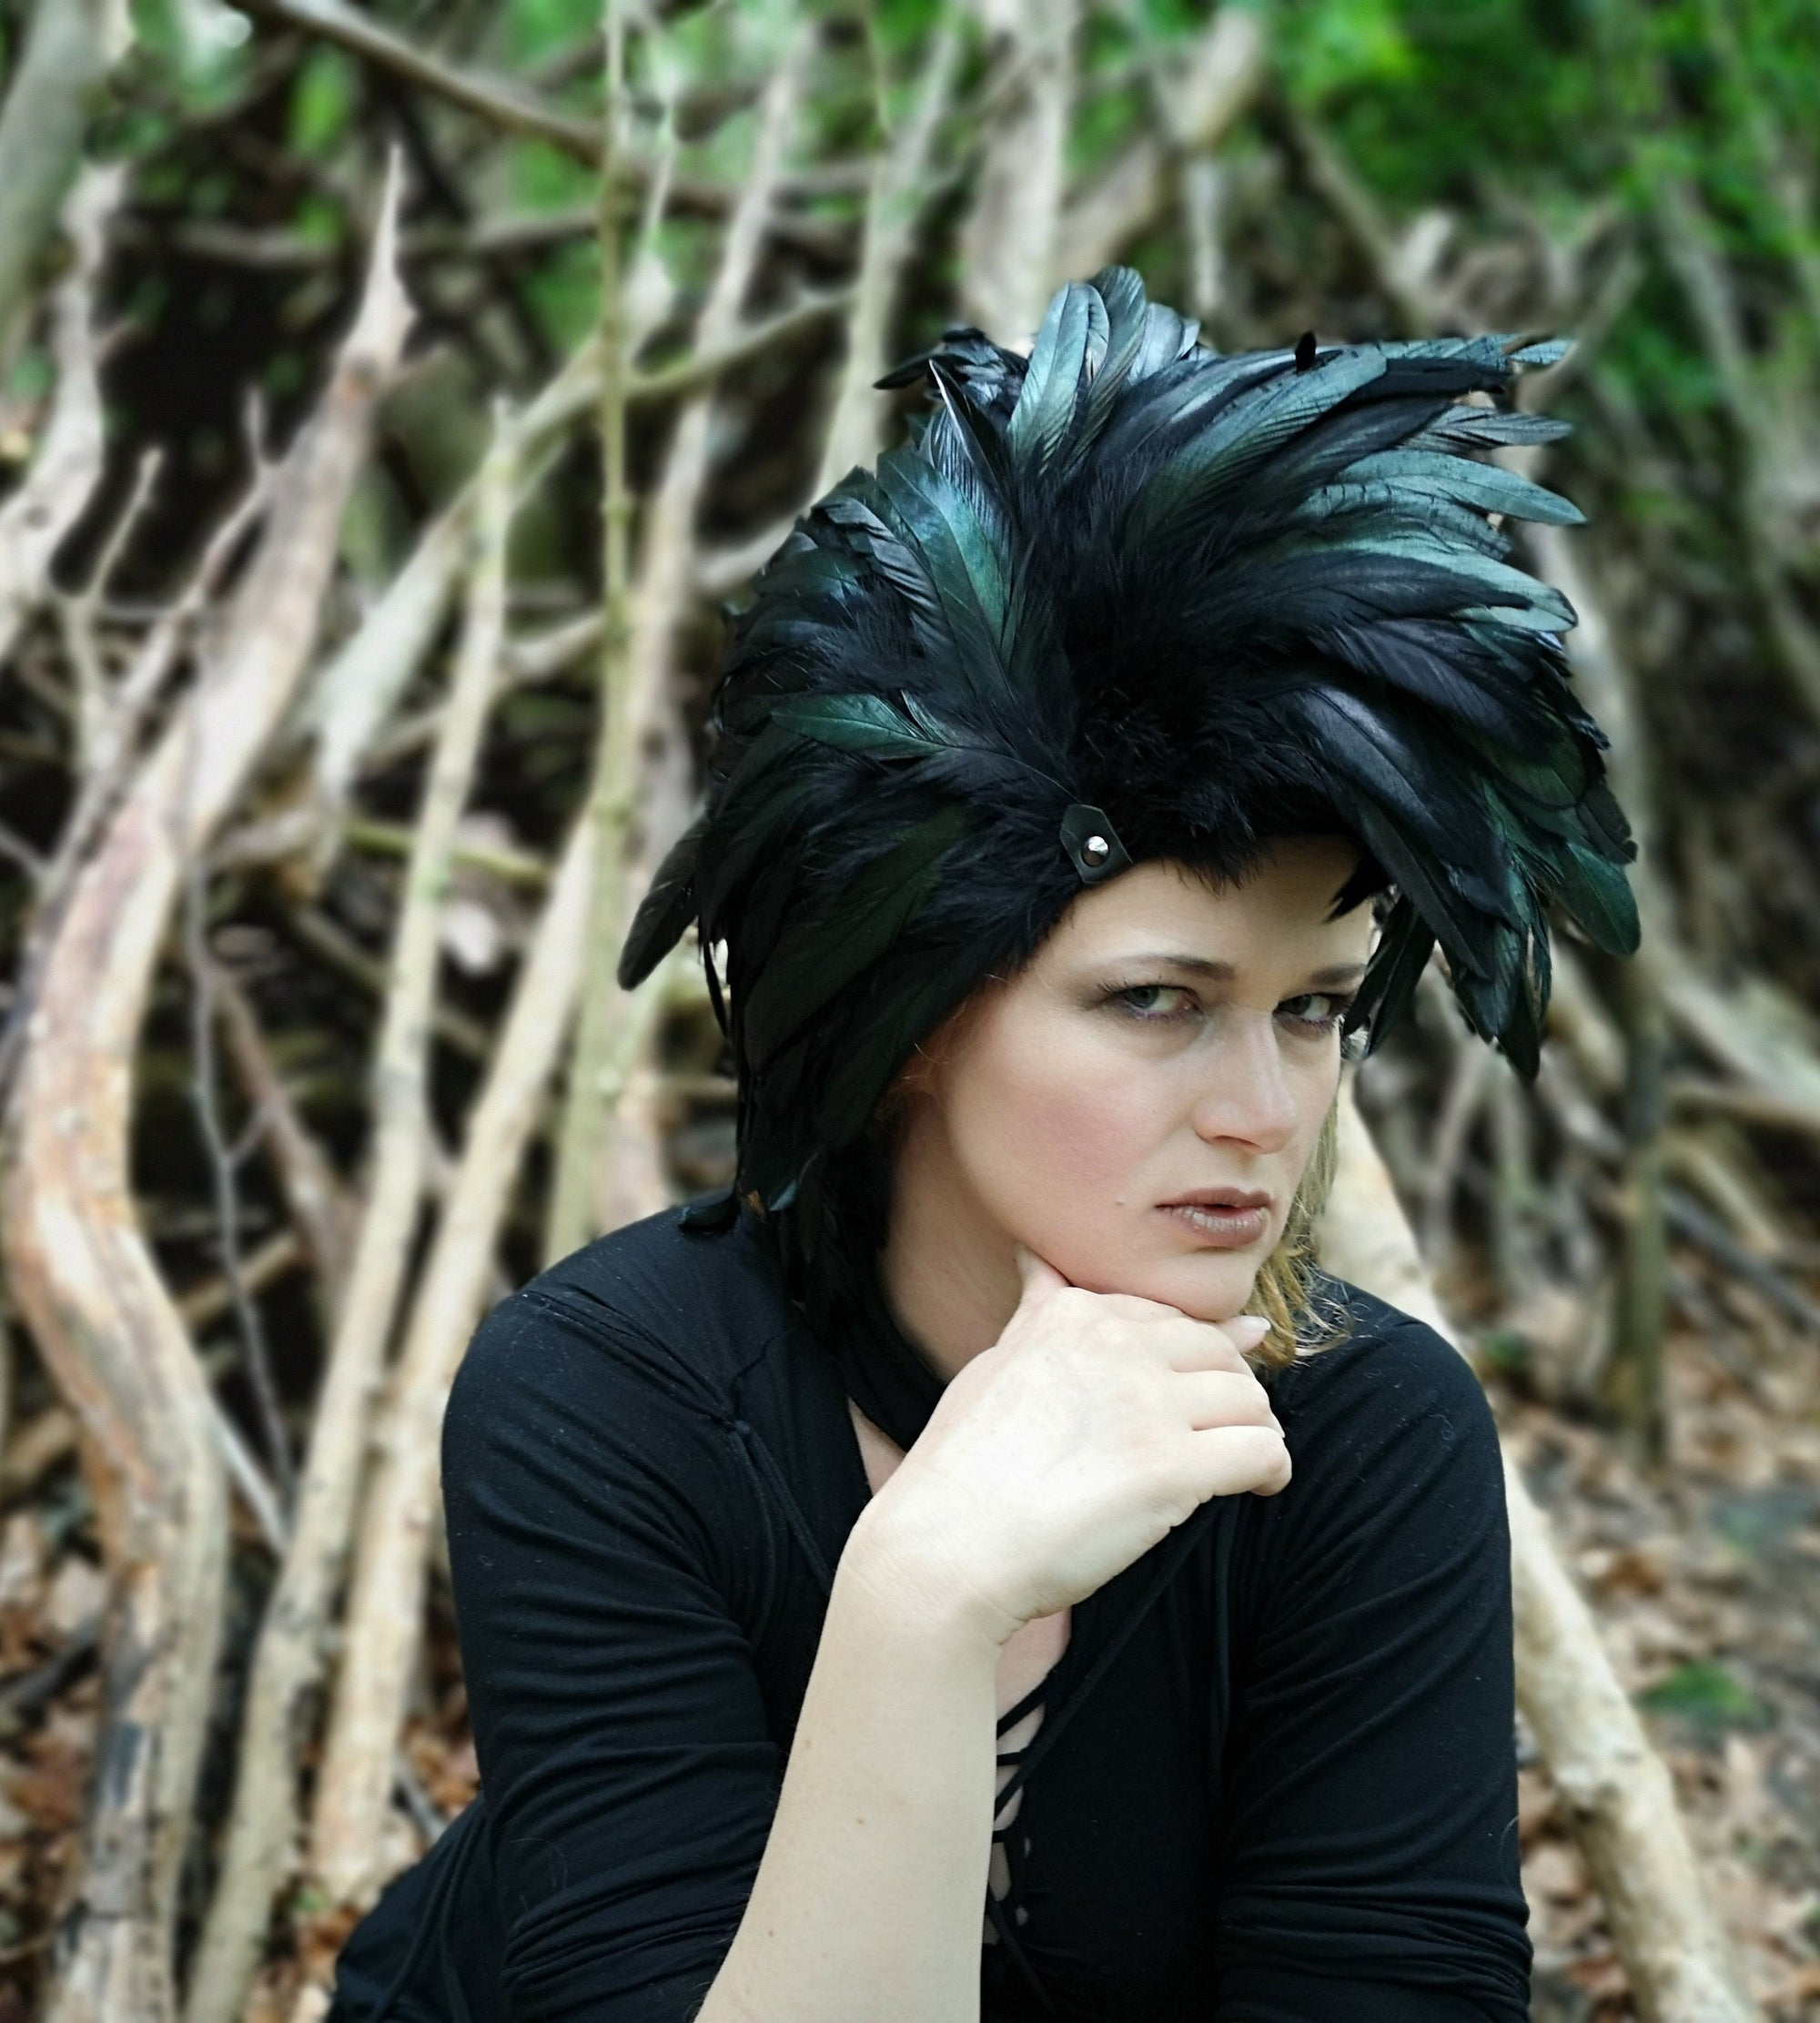 Punk headpiece / Feathered art wig